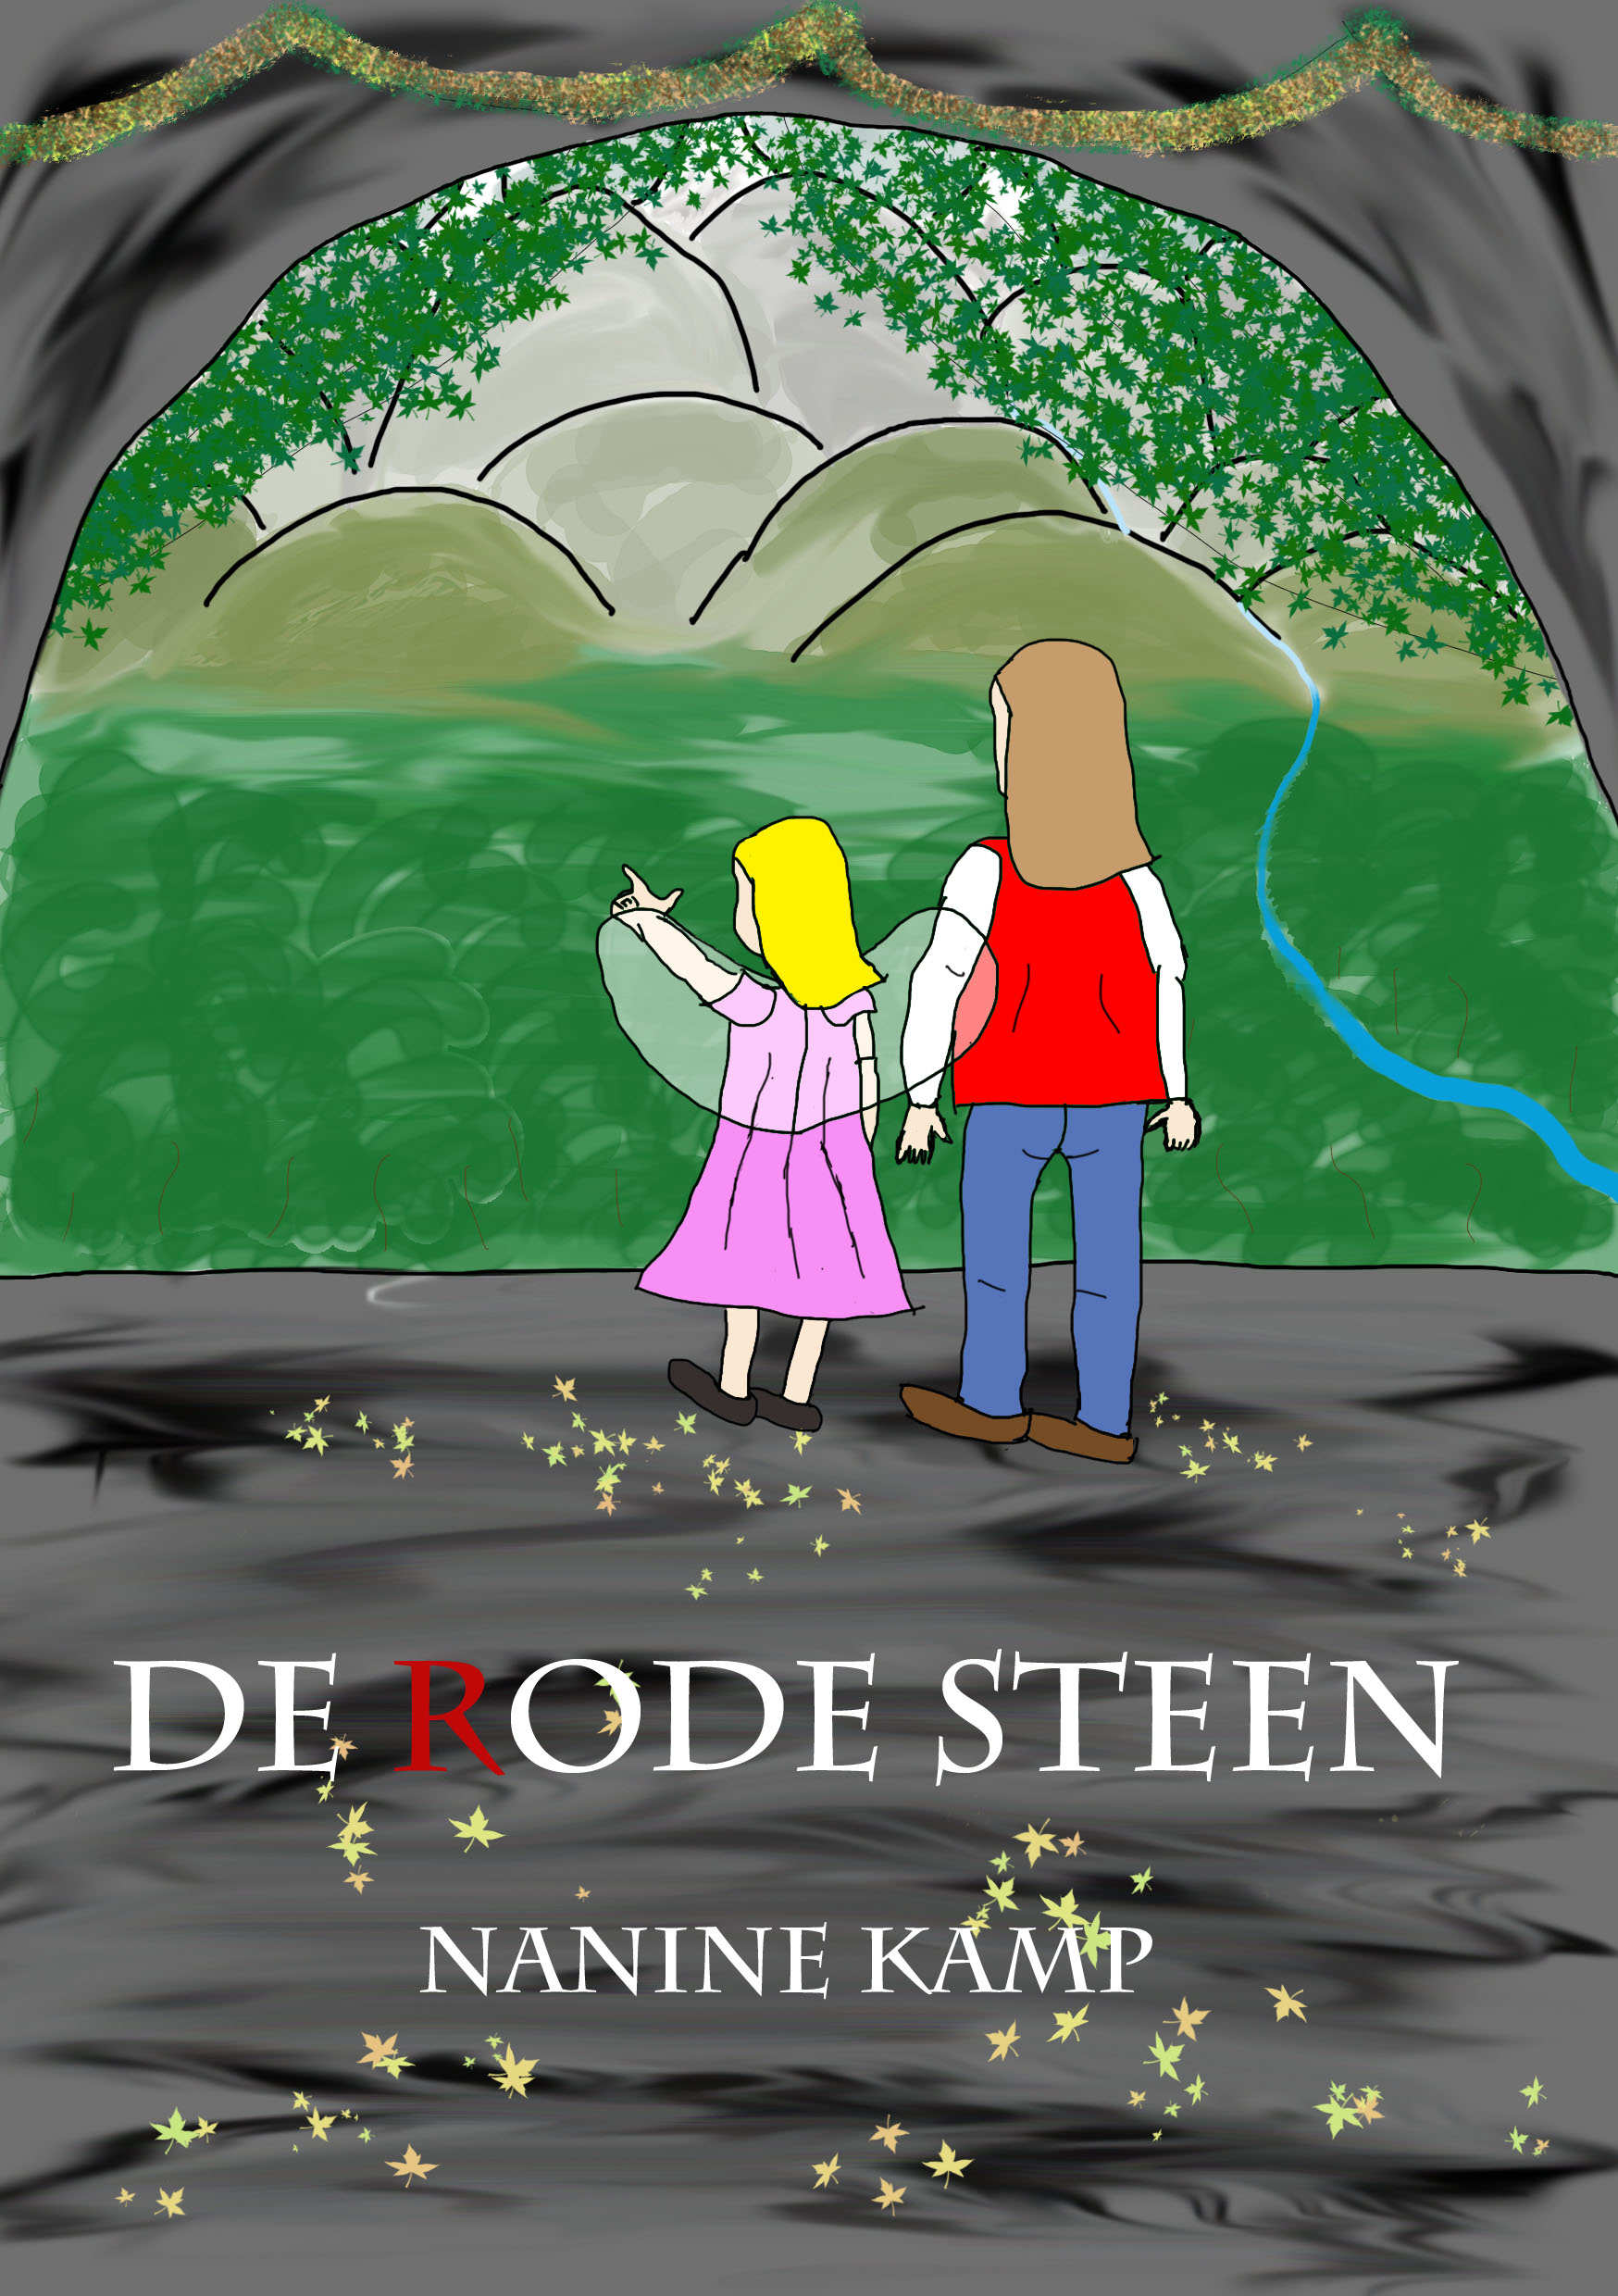 Nanine Kamp - De Rode Steen gratis ebook